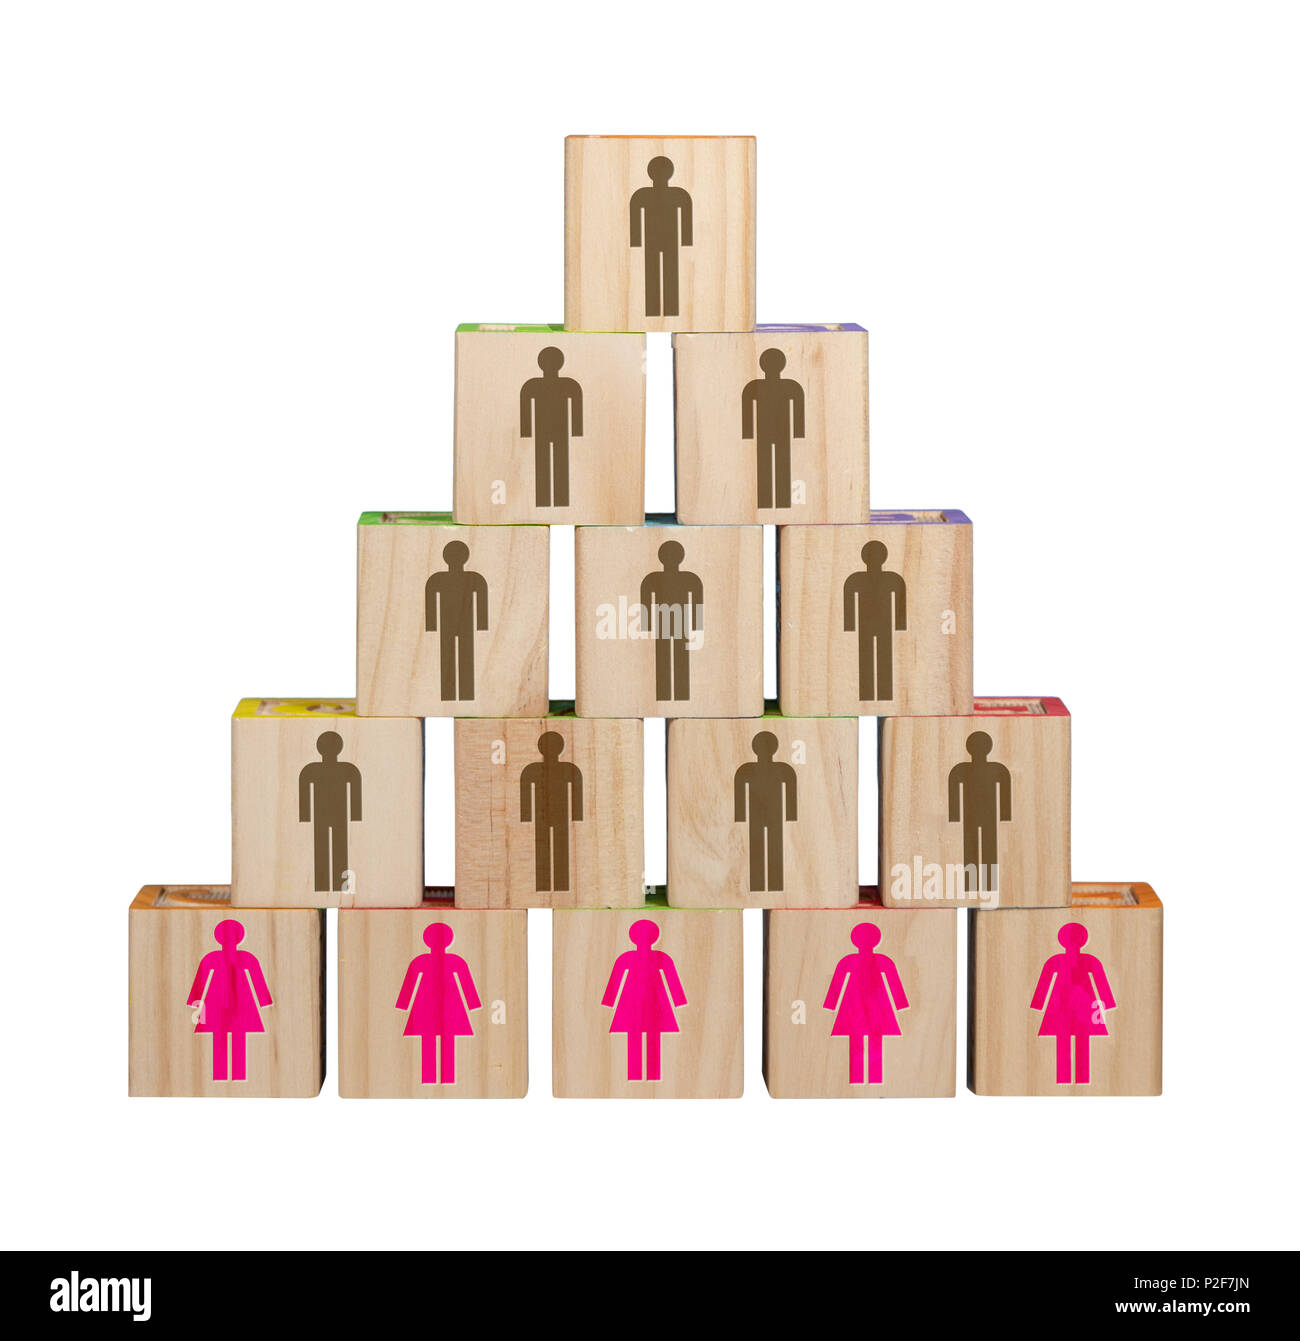 Traditional organization with women in menial positions - Stock Image